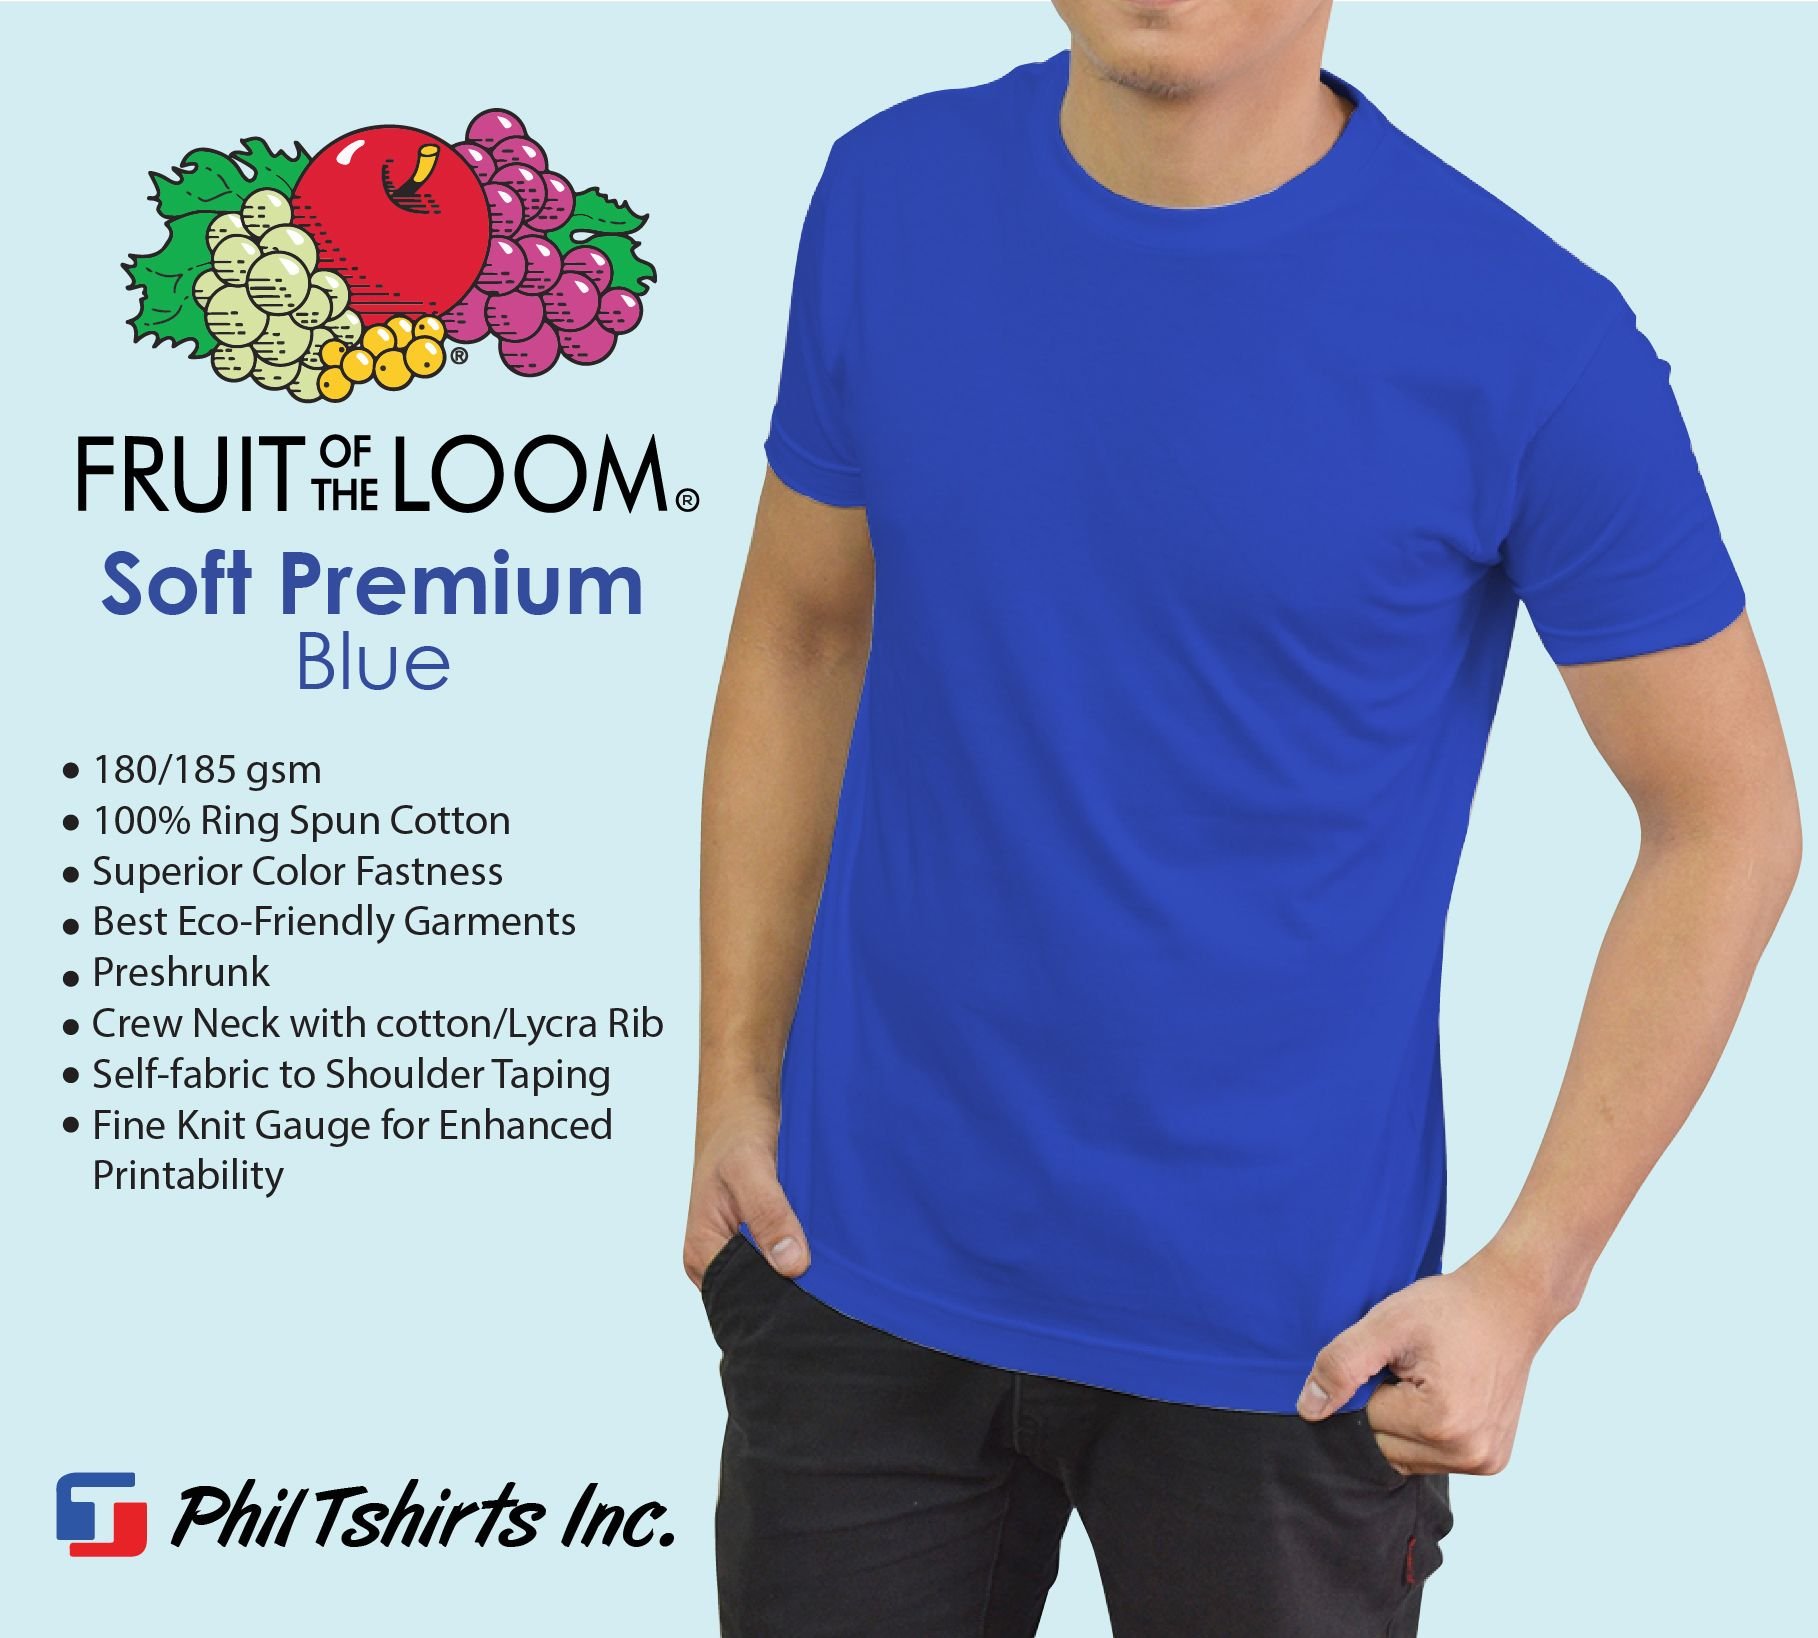 Phil TShirts Inc  is an authorized distributor of Fruit of